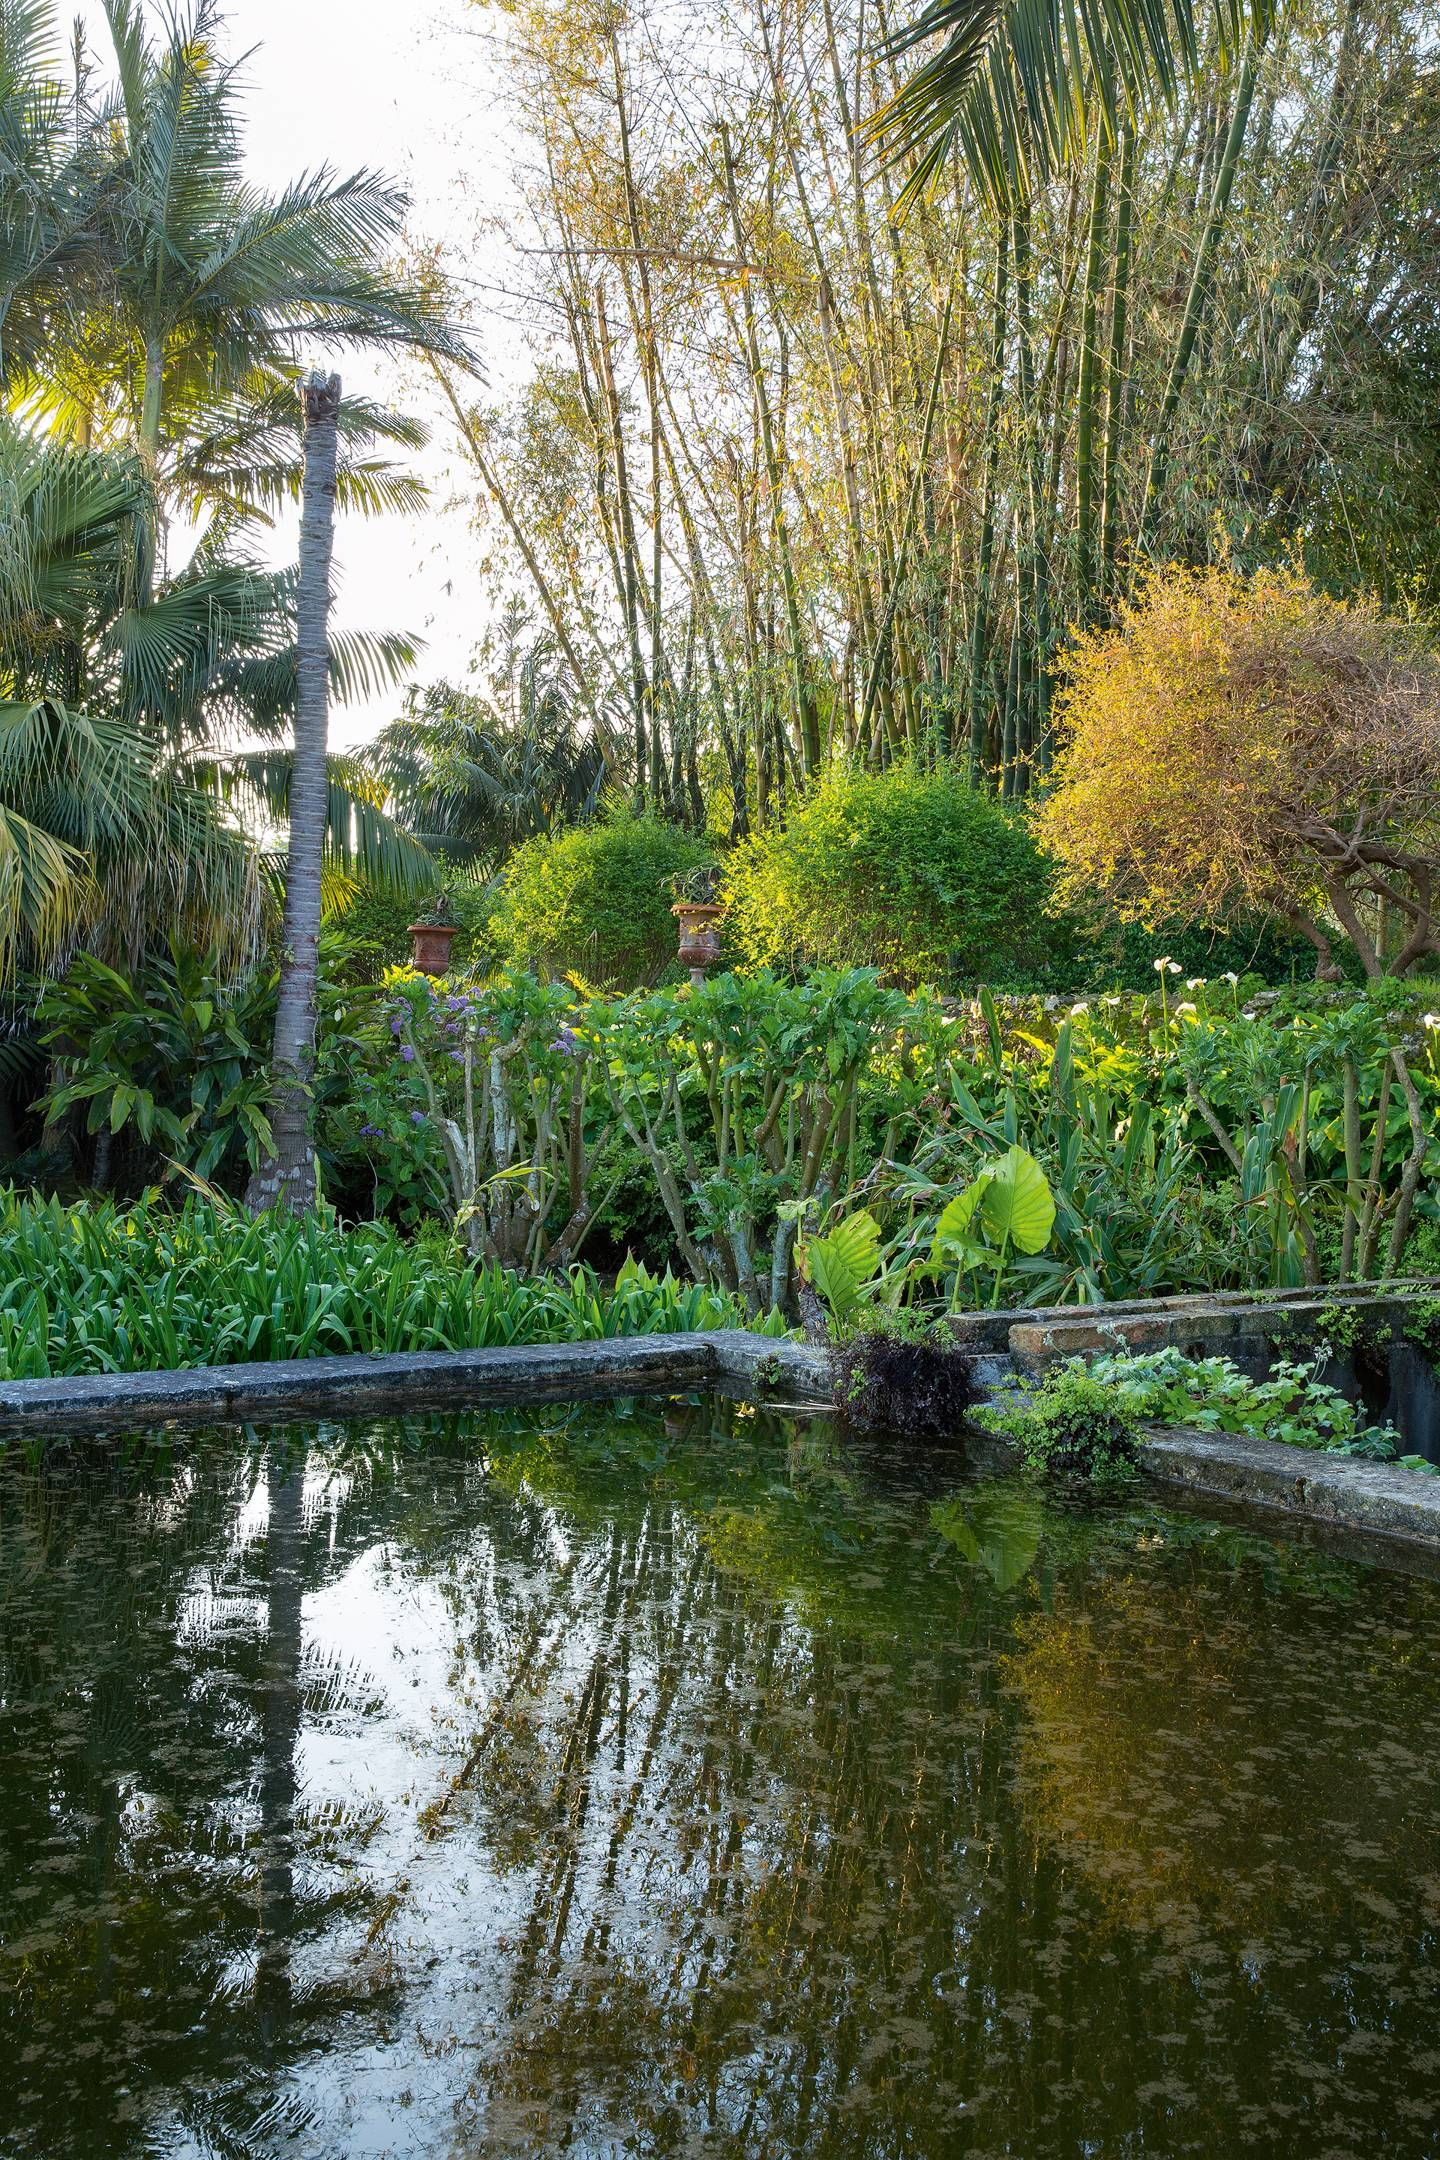 Landscape of house garden  The yearold estate of a Sicilian marquis with evolving displays